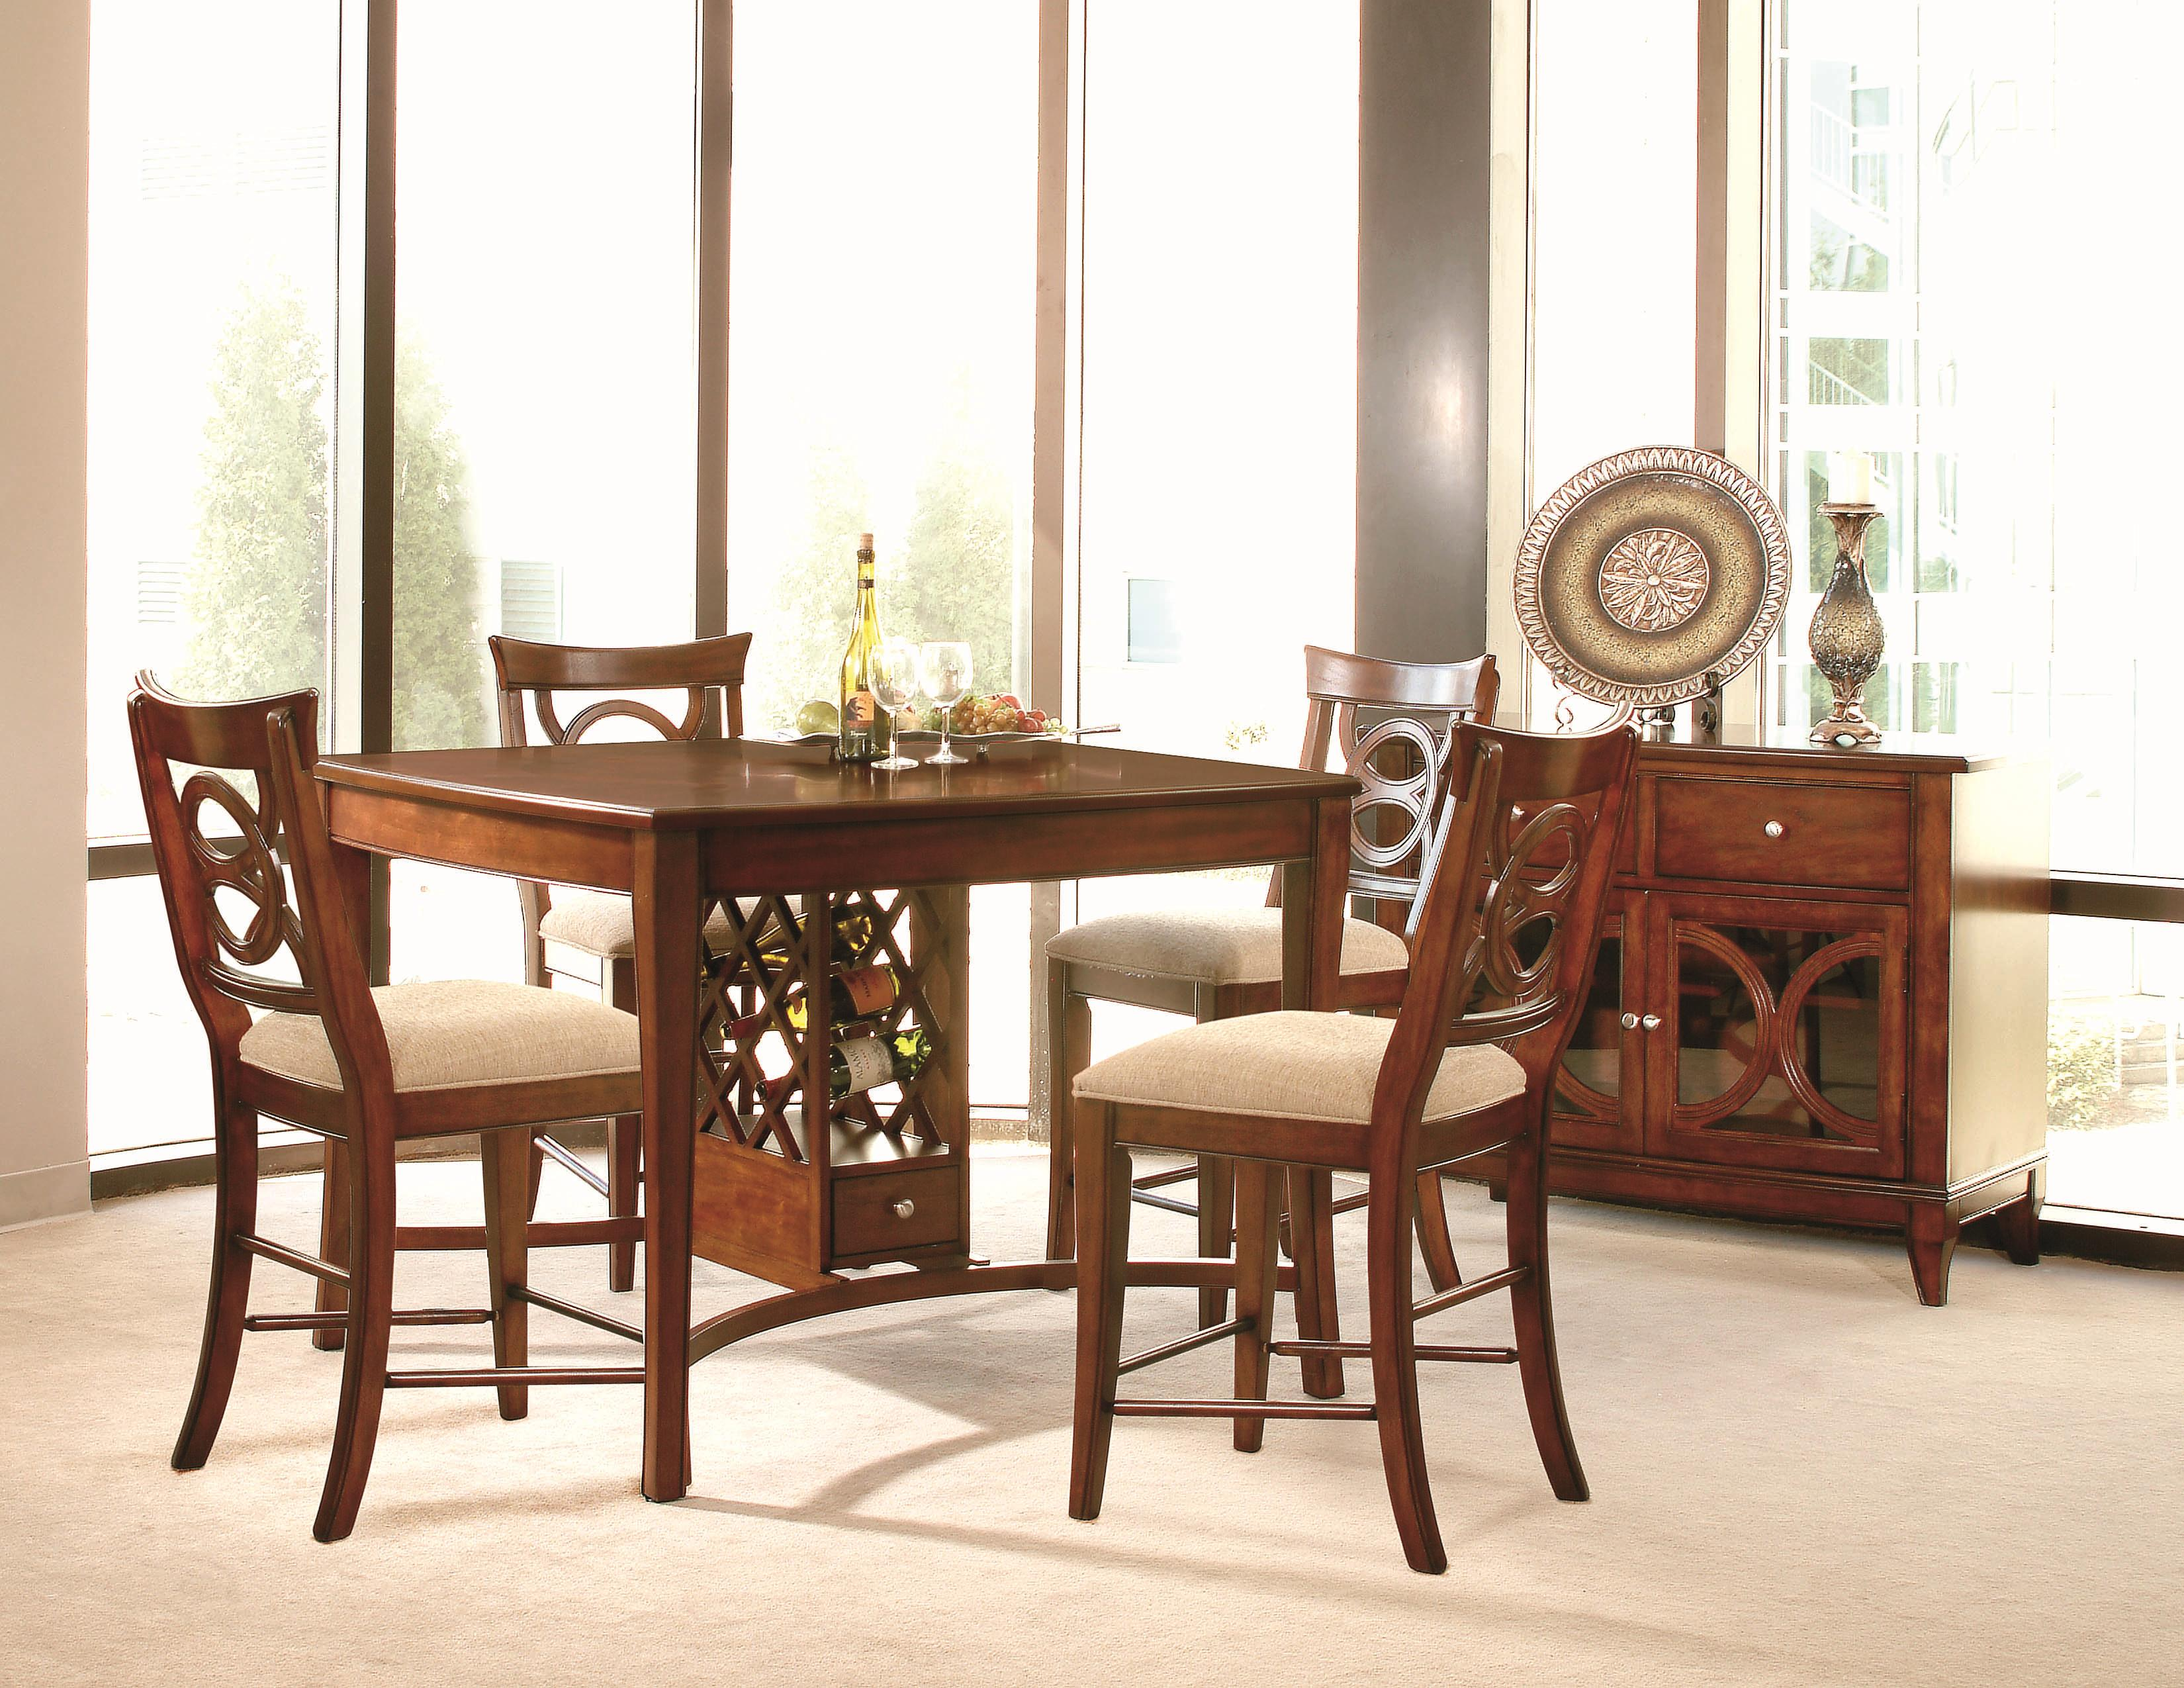 Lacquer Craft USA Orion Rectangle Leg Dining Table With Wood Veneers